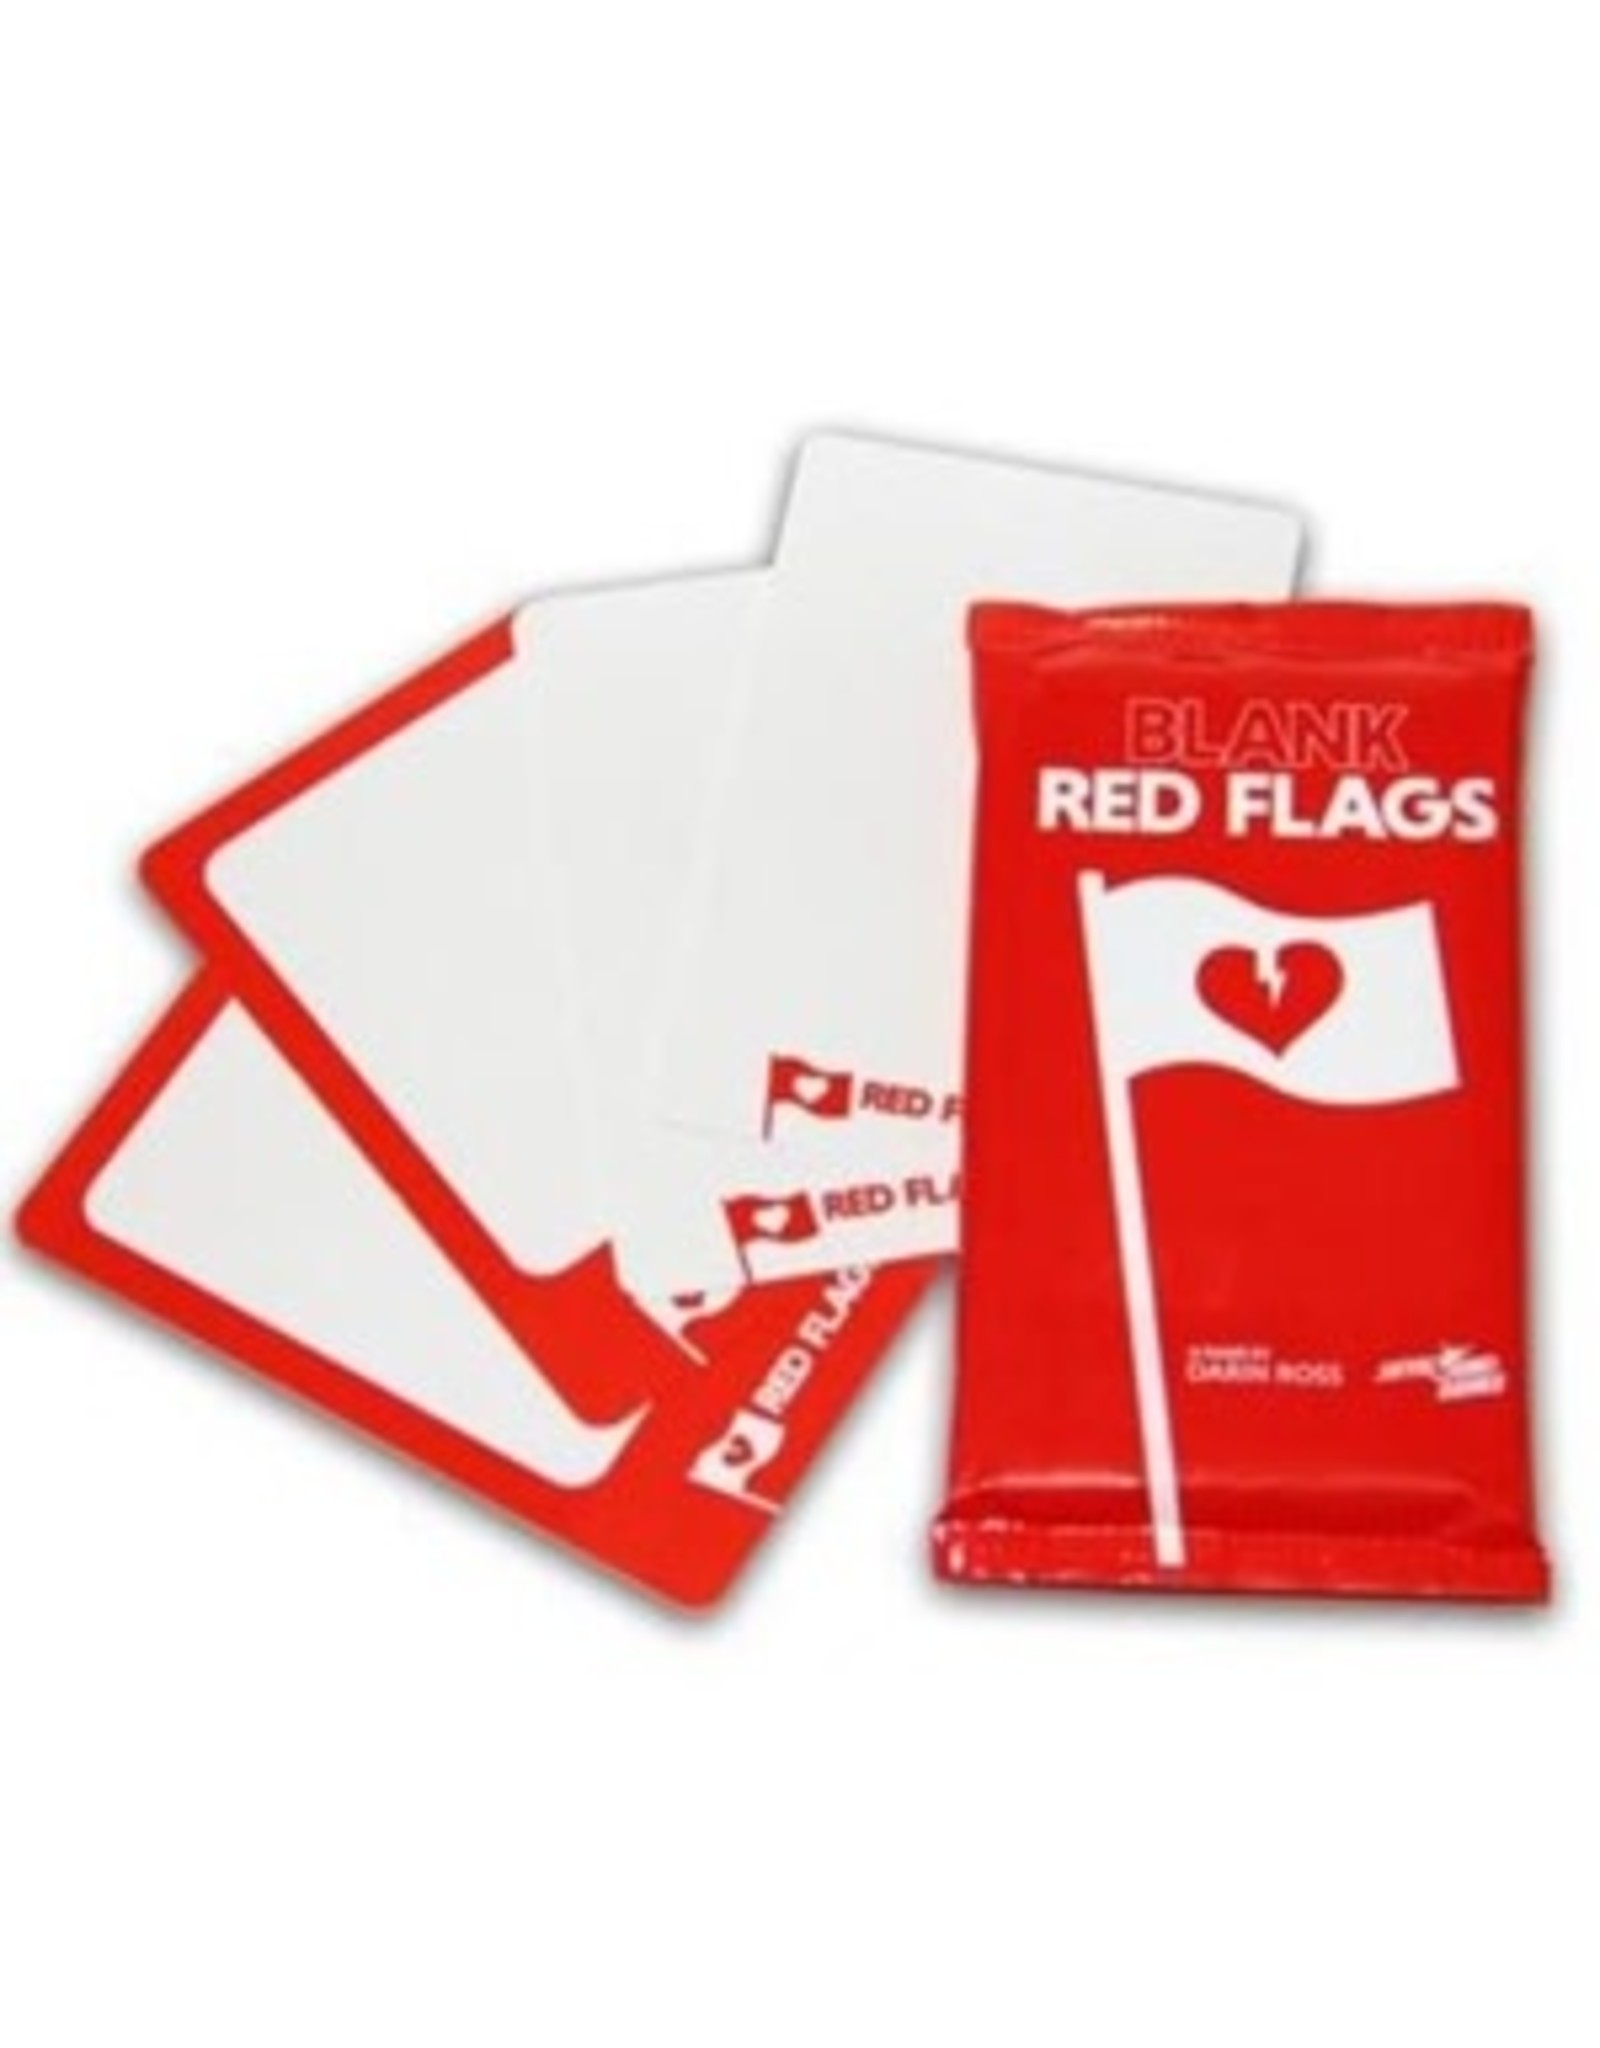 Red Flags: Blank Cards